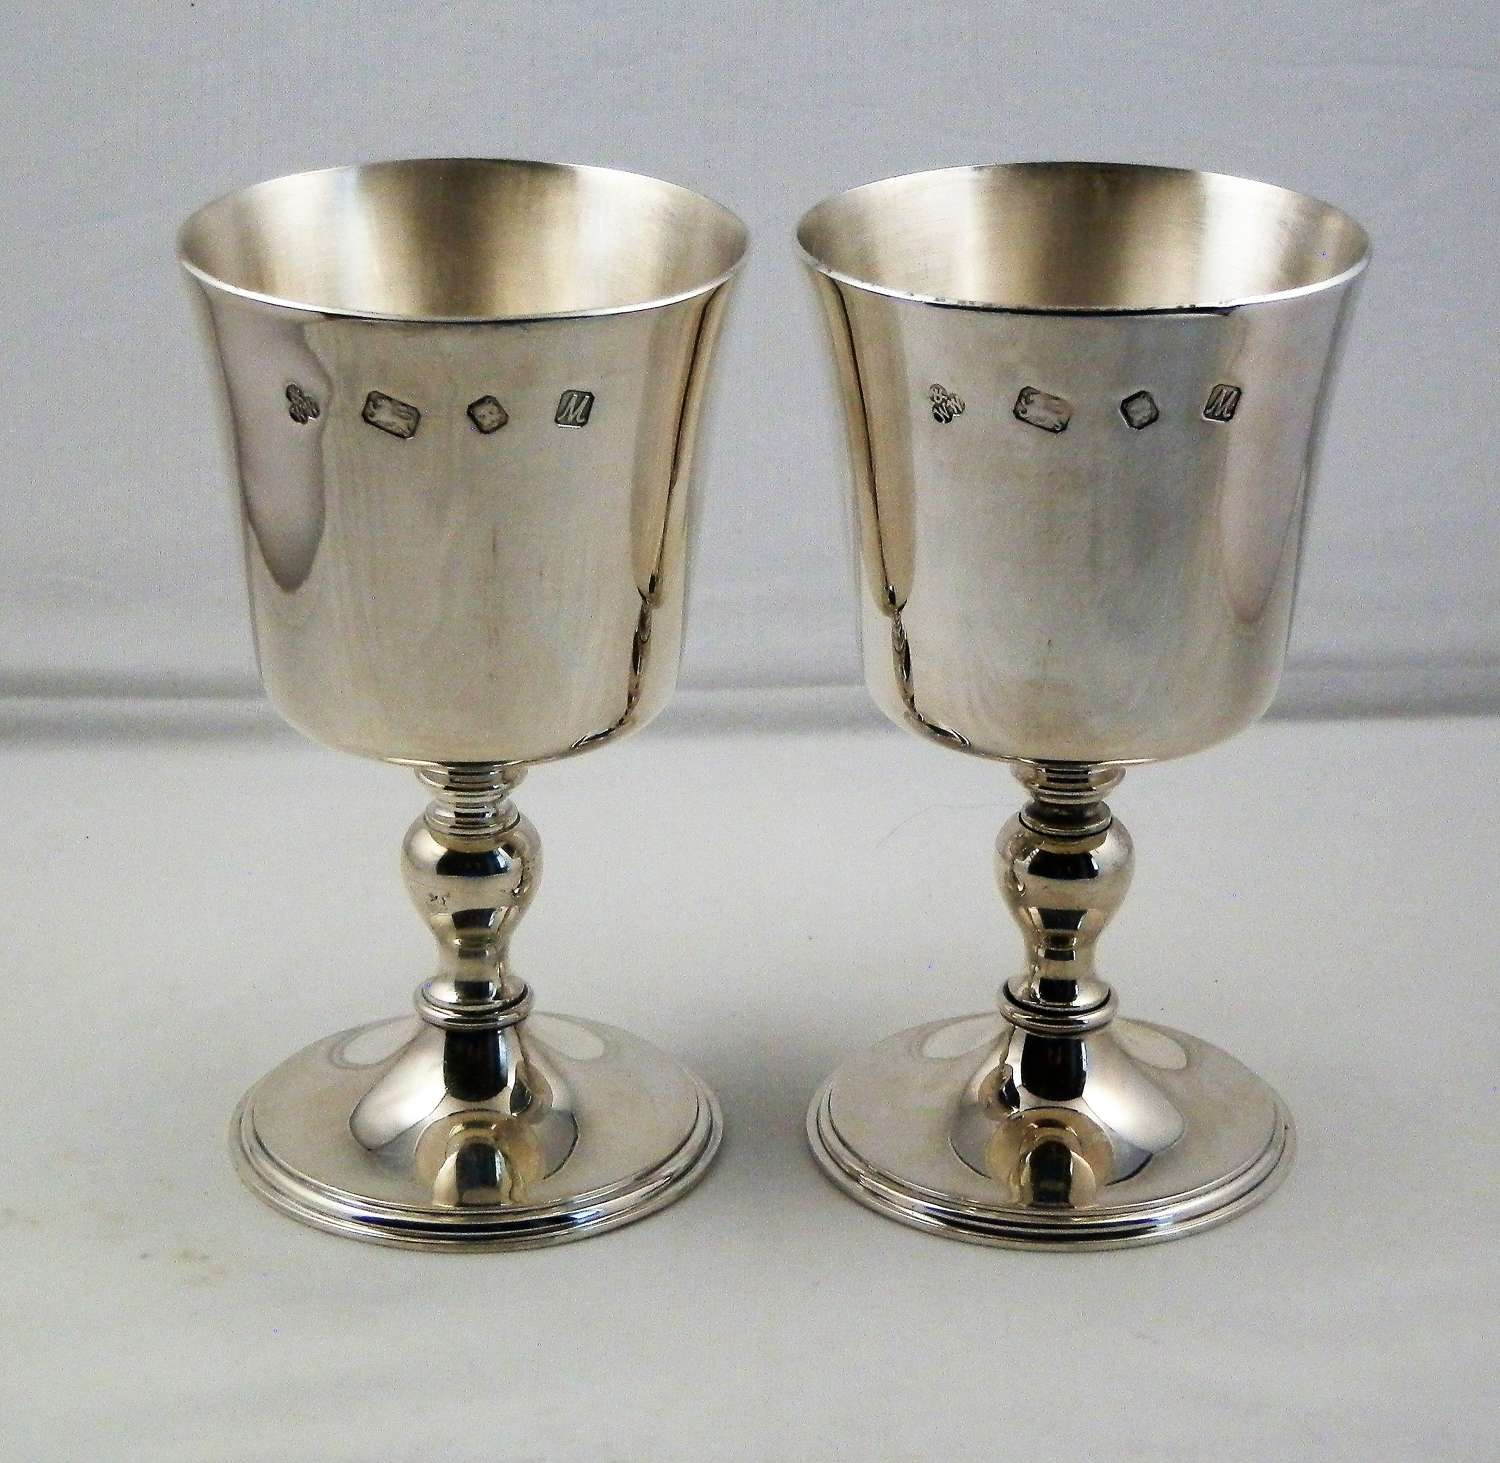 A pair of silver wine goblets, Wakely and Wheeler, 1986